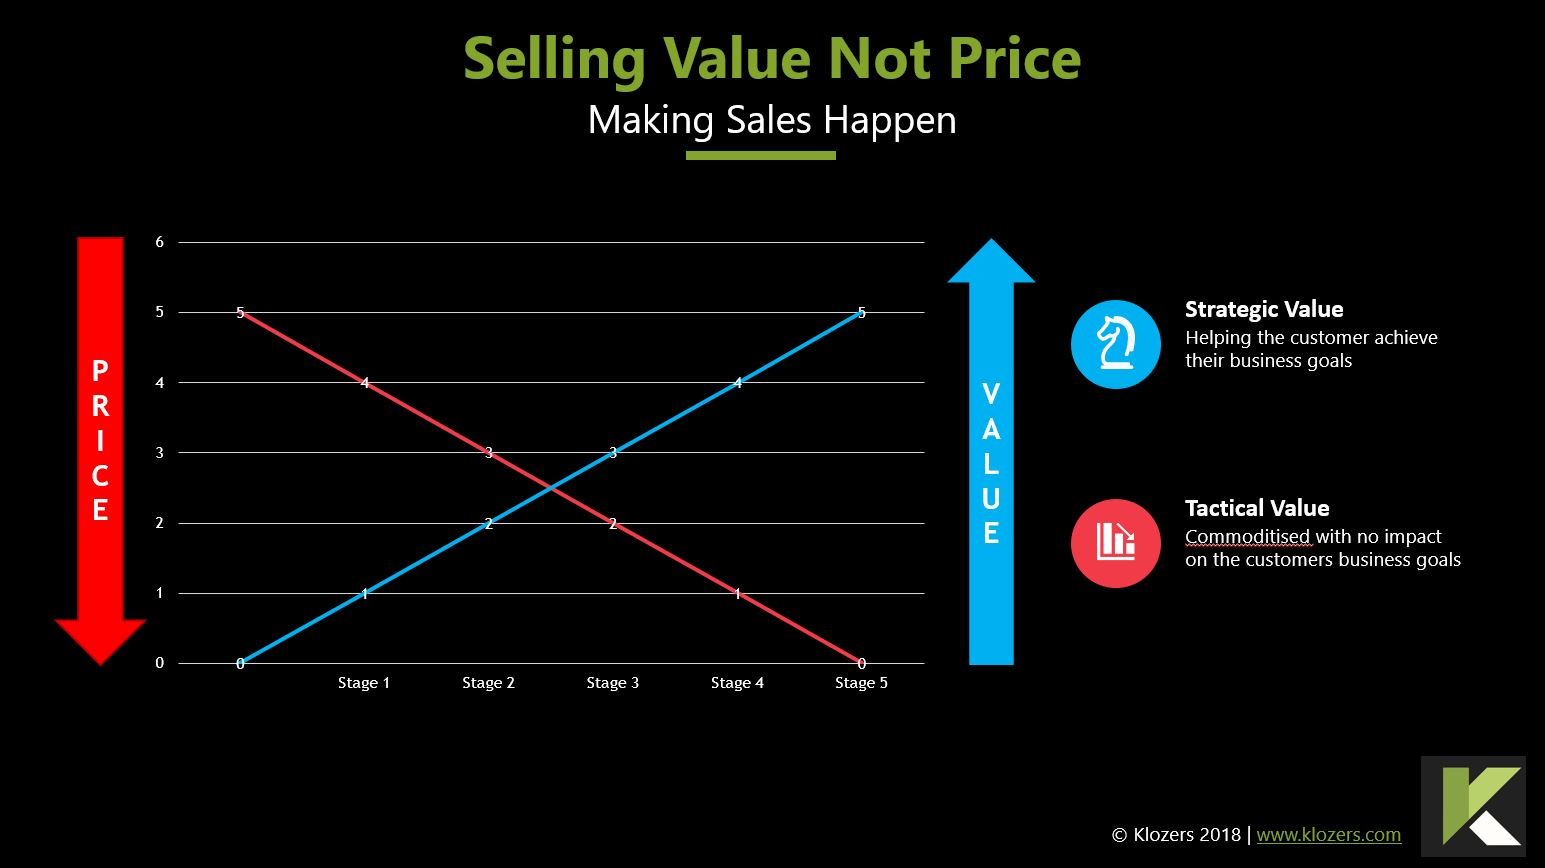 How to Sell Value Not Price